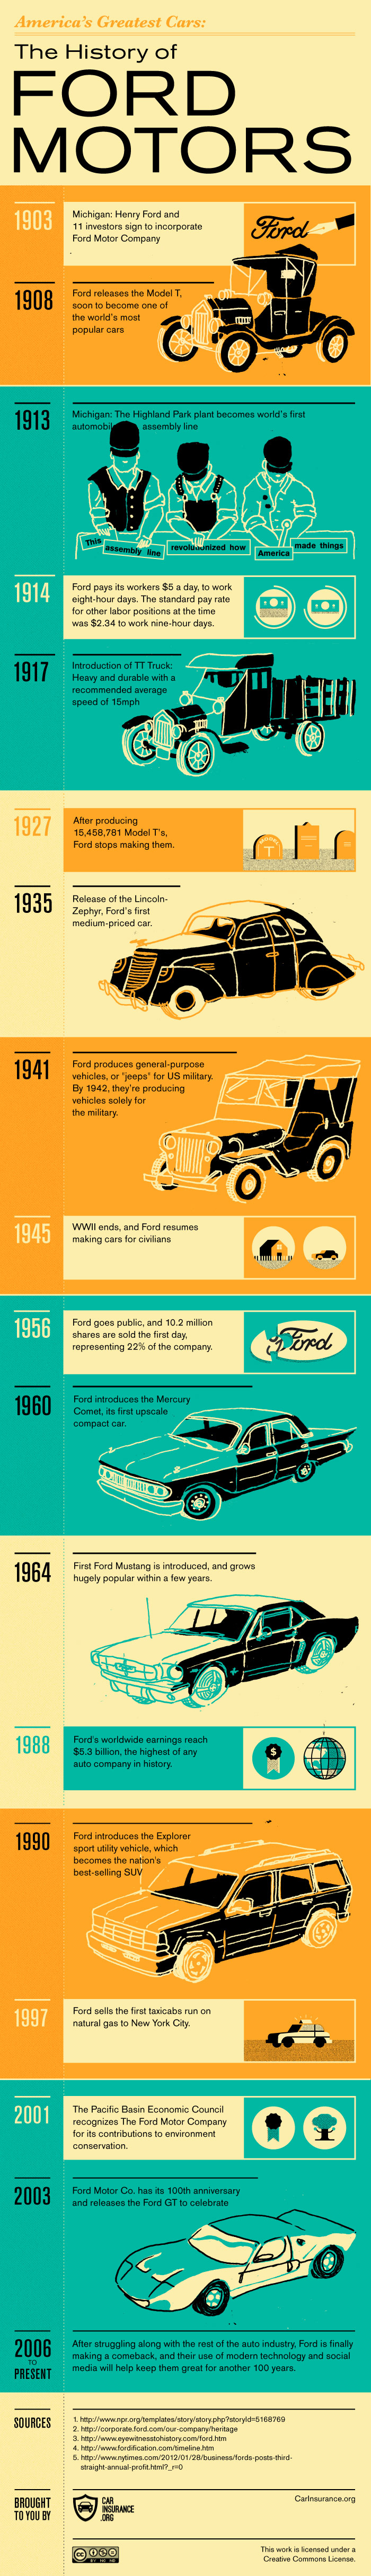 History of Ford Motors